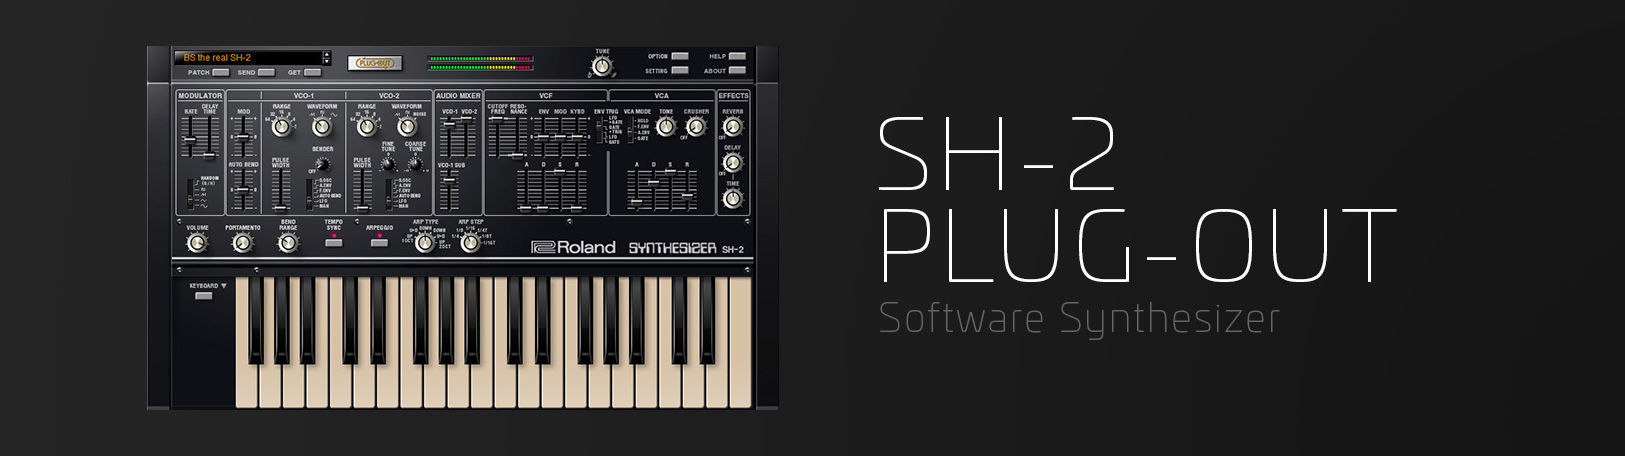 SH-2: Synth Software - ACB Virtual Synth - VST Plugin | Roland Cloud